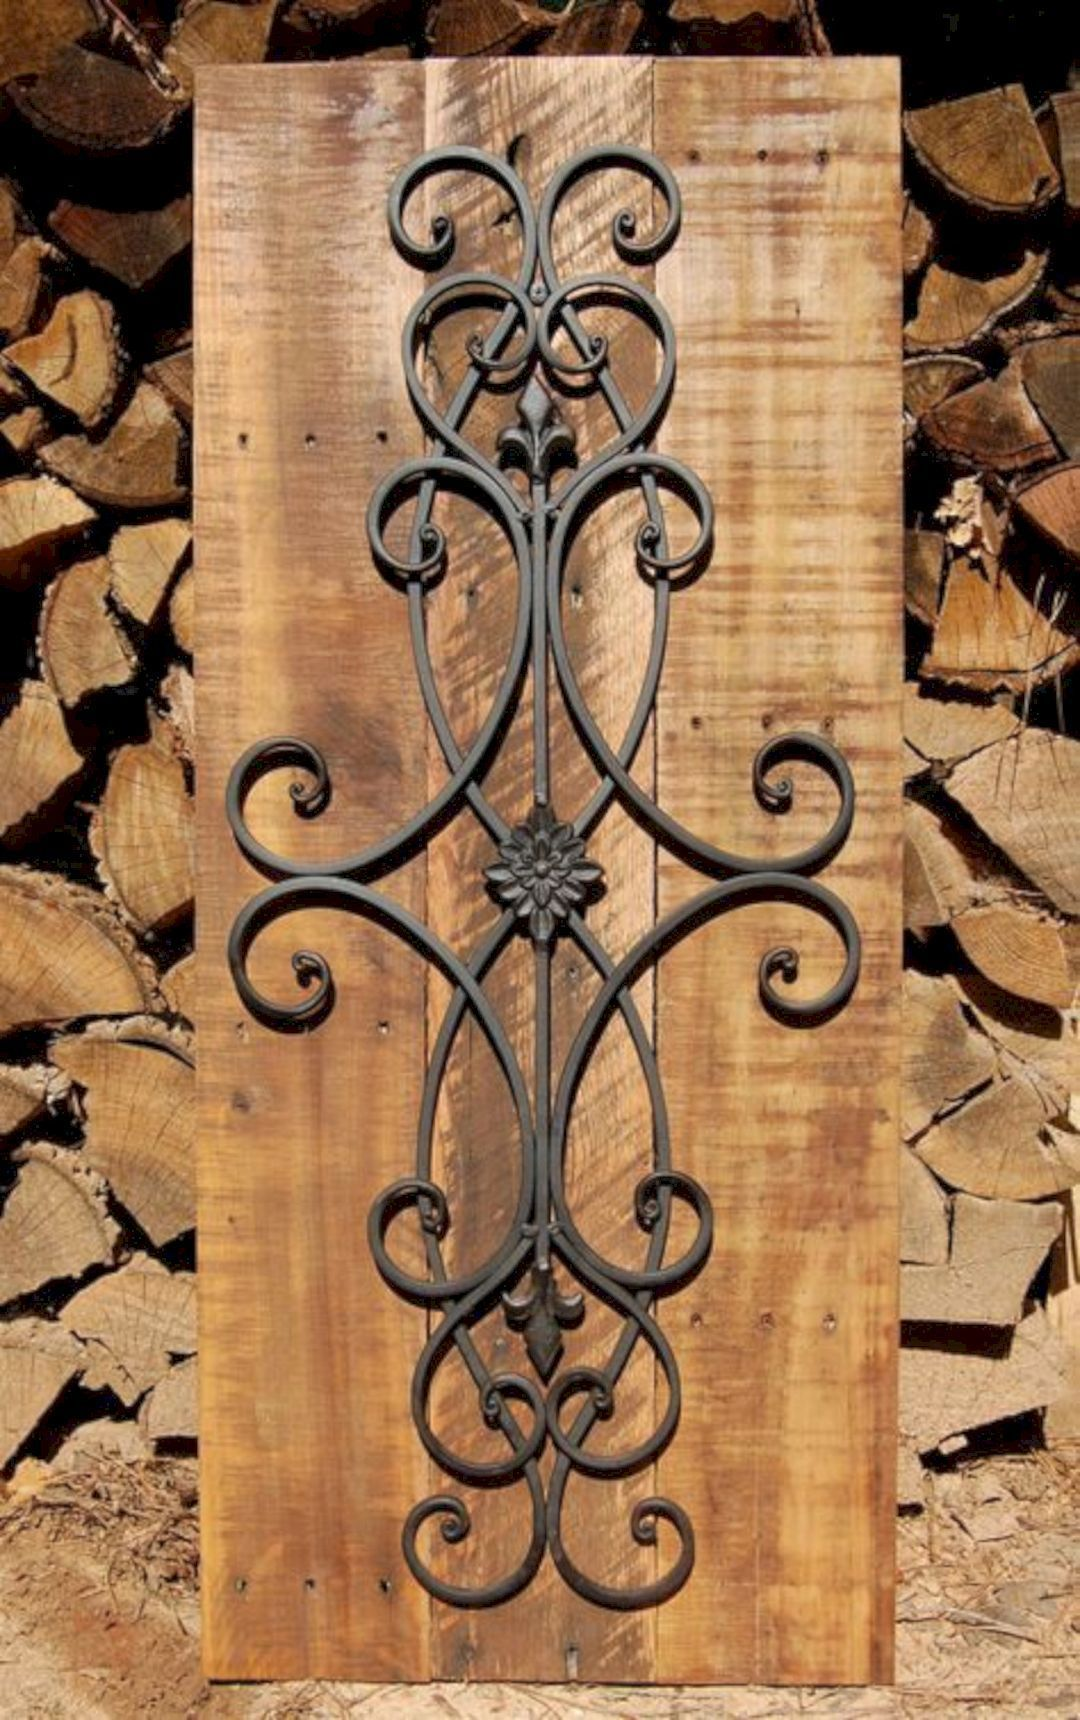 10 Superb Iron Wall Decorations Https Www Futuristarchitecture Com 34533 Iron Wall Decorations Html Wrought Iron Wall Decor Iron Wall Decor Rustic Wall Art